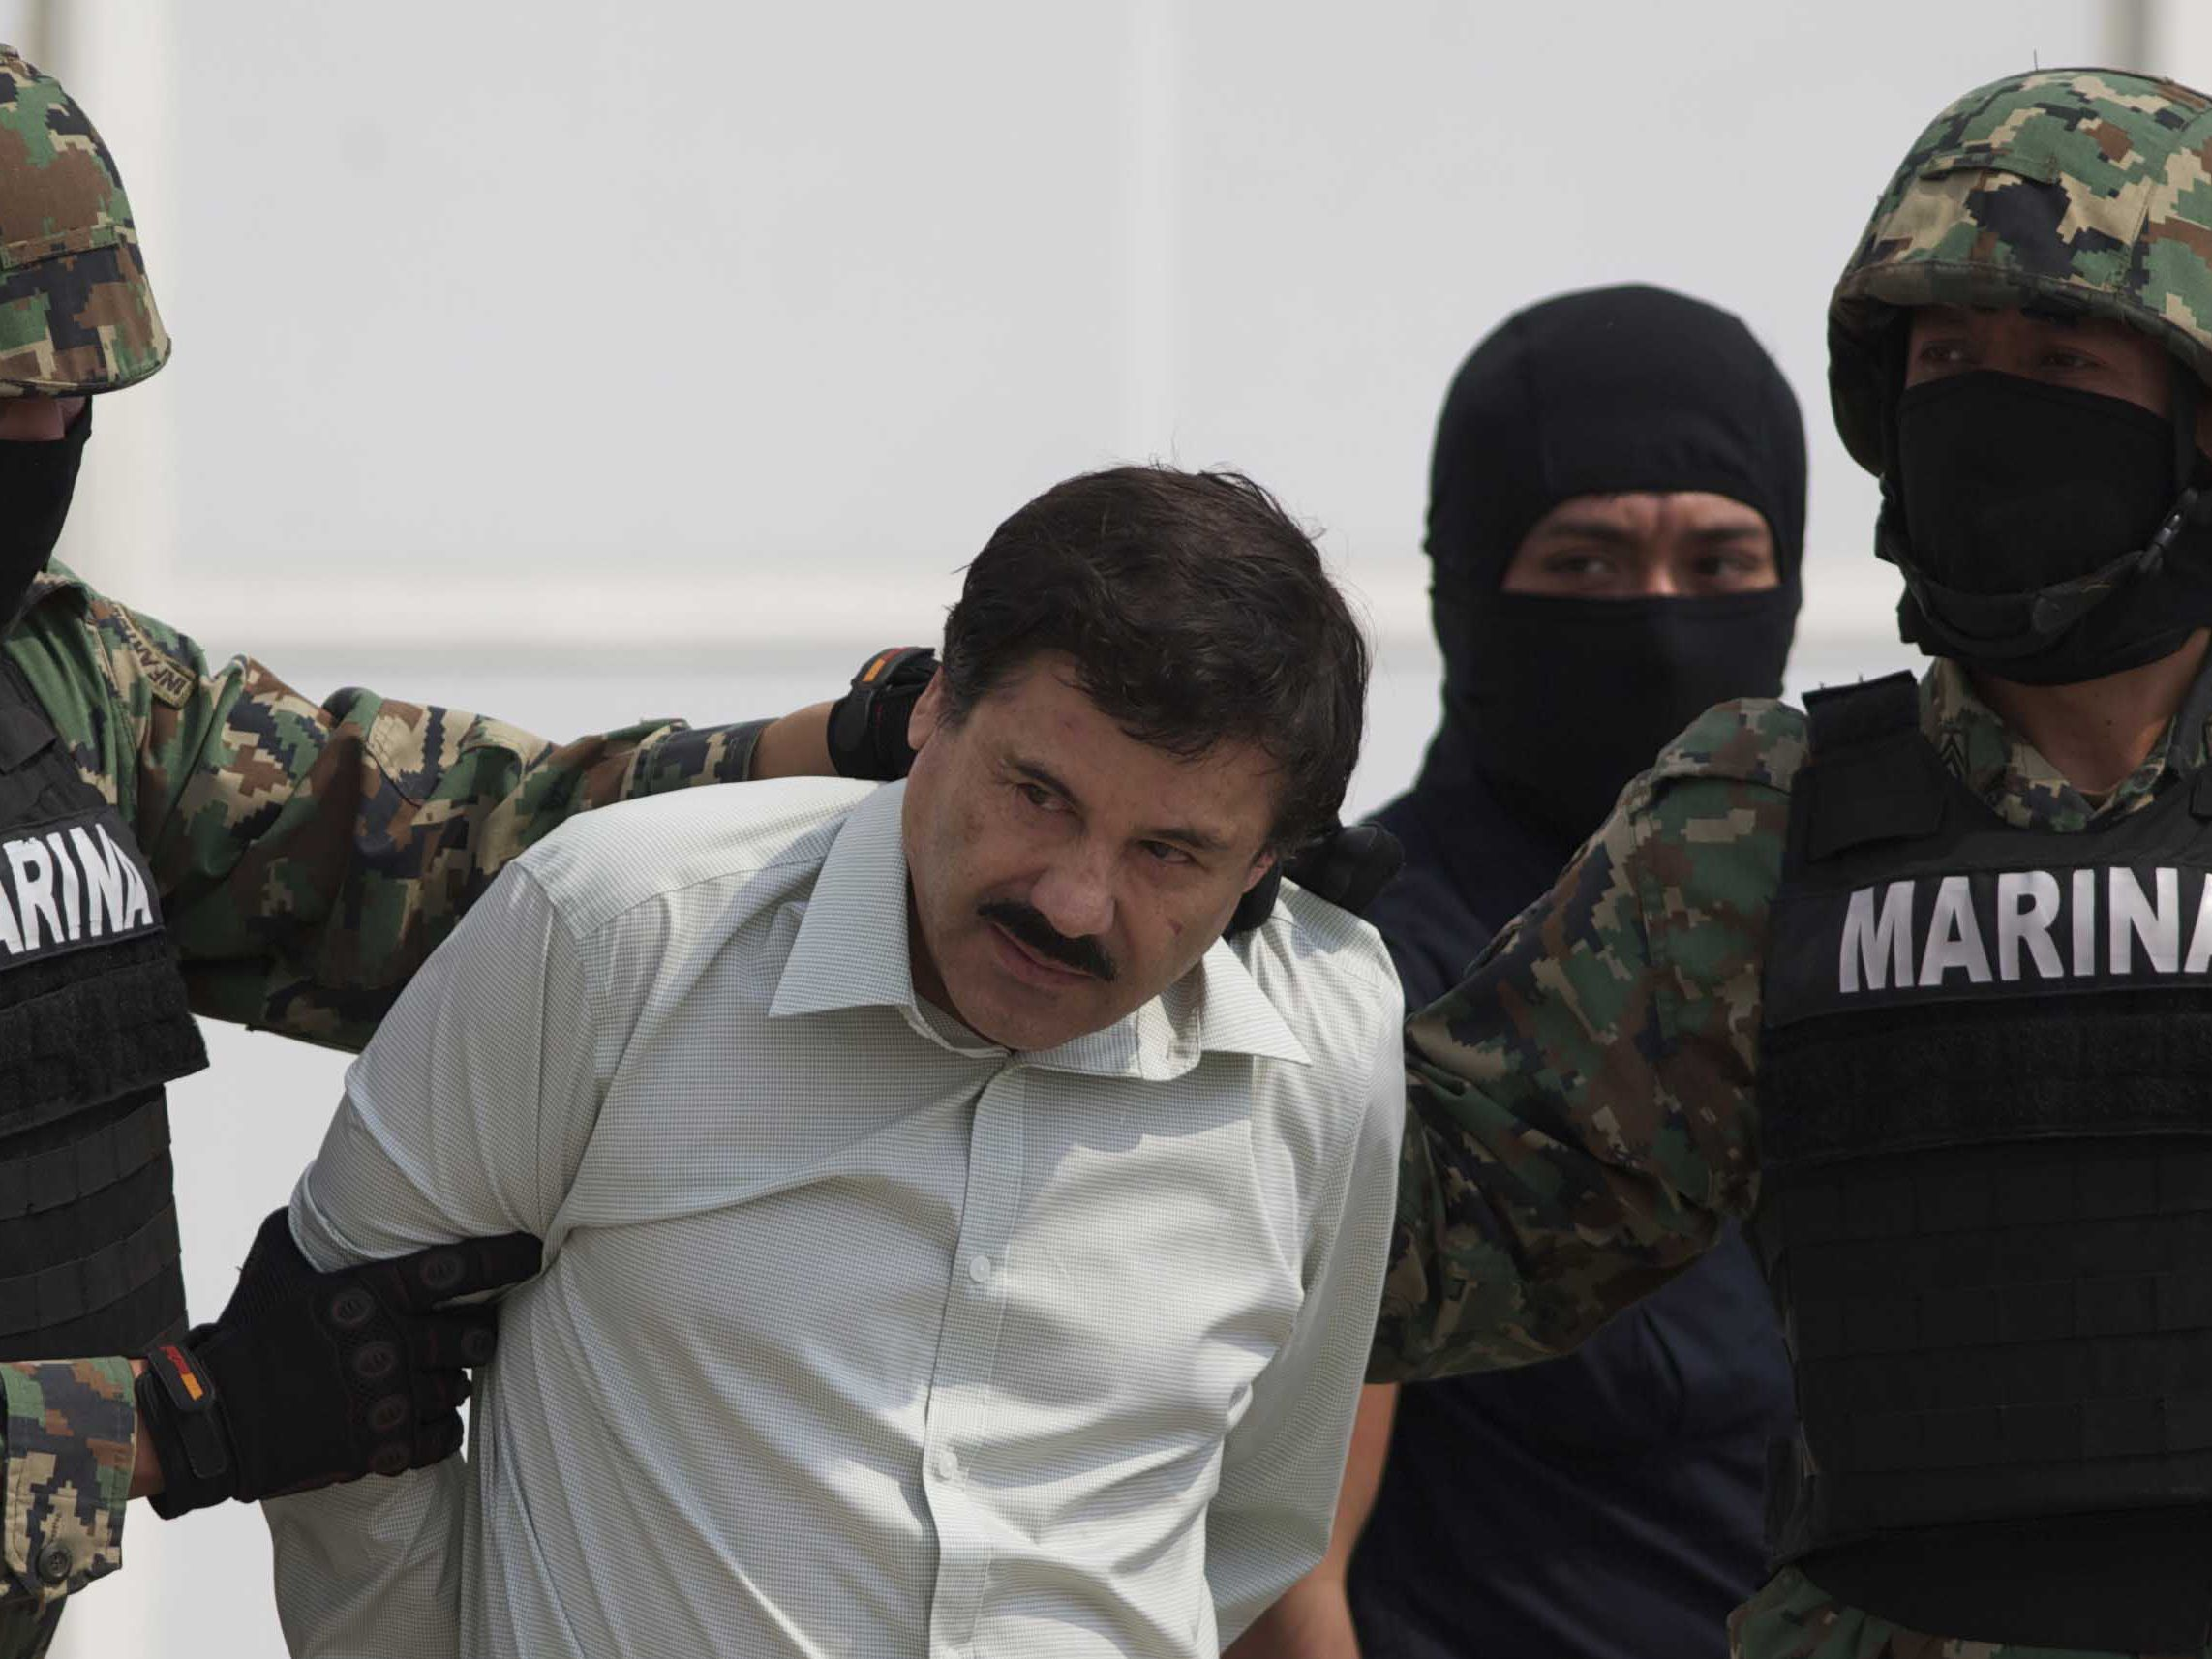 El Chapo's sons indicted on drug conspiracy charges, feds say